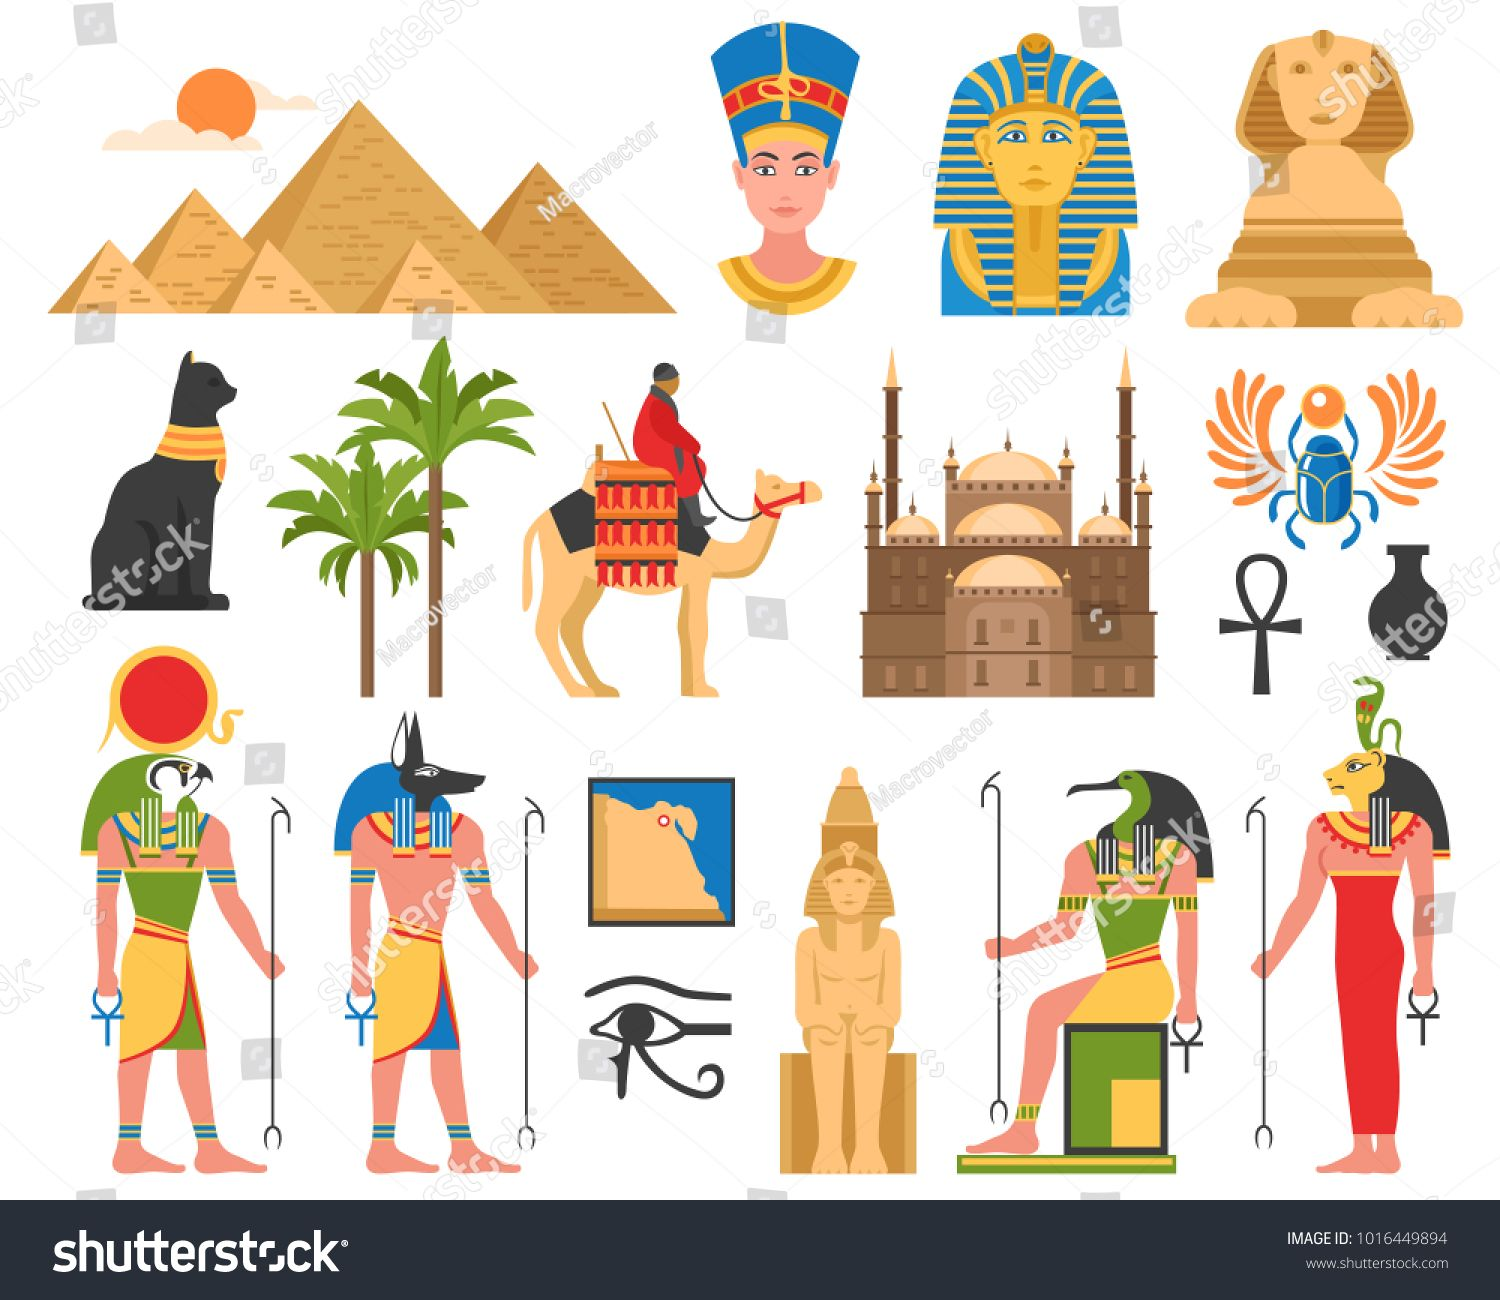 Free hd clipart egyptian painted column designs clip free library Egypt set of ancient egyptian idols statues and architectural ... clip free library